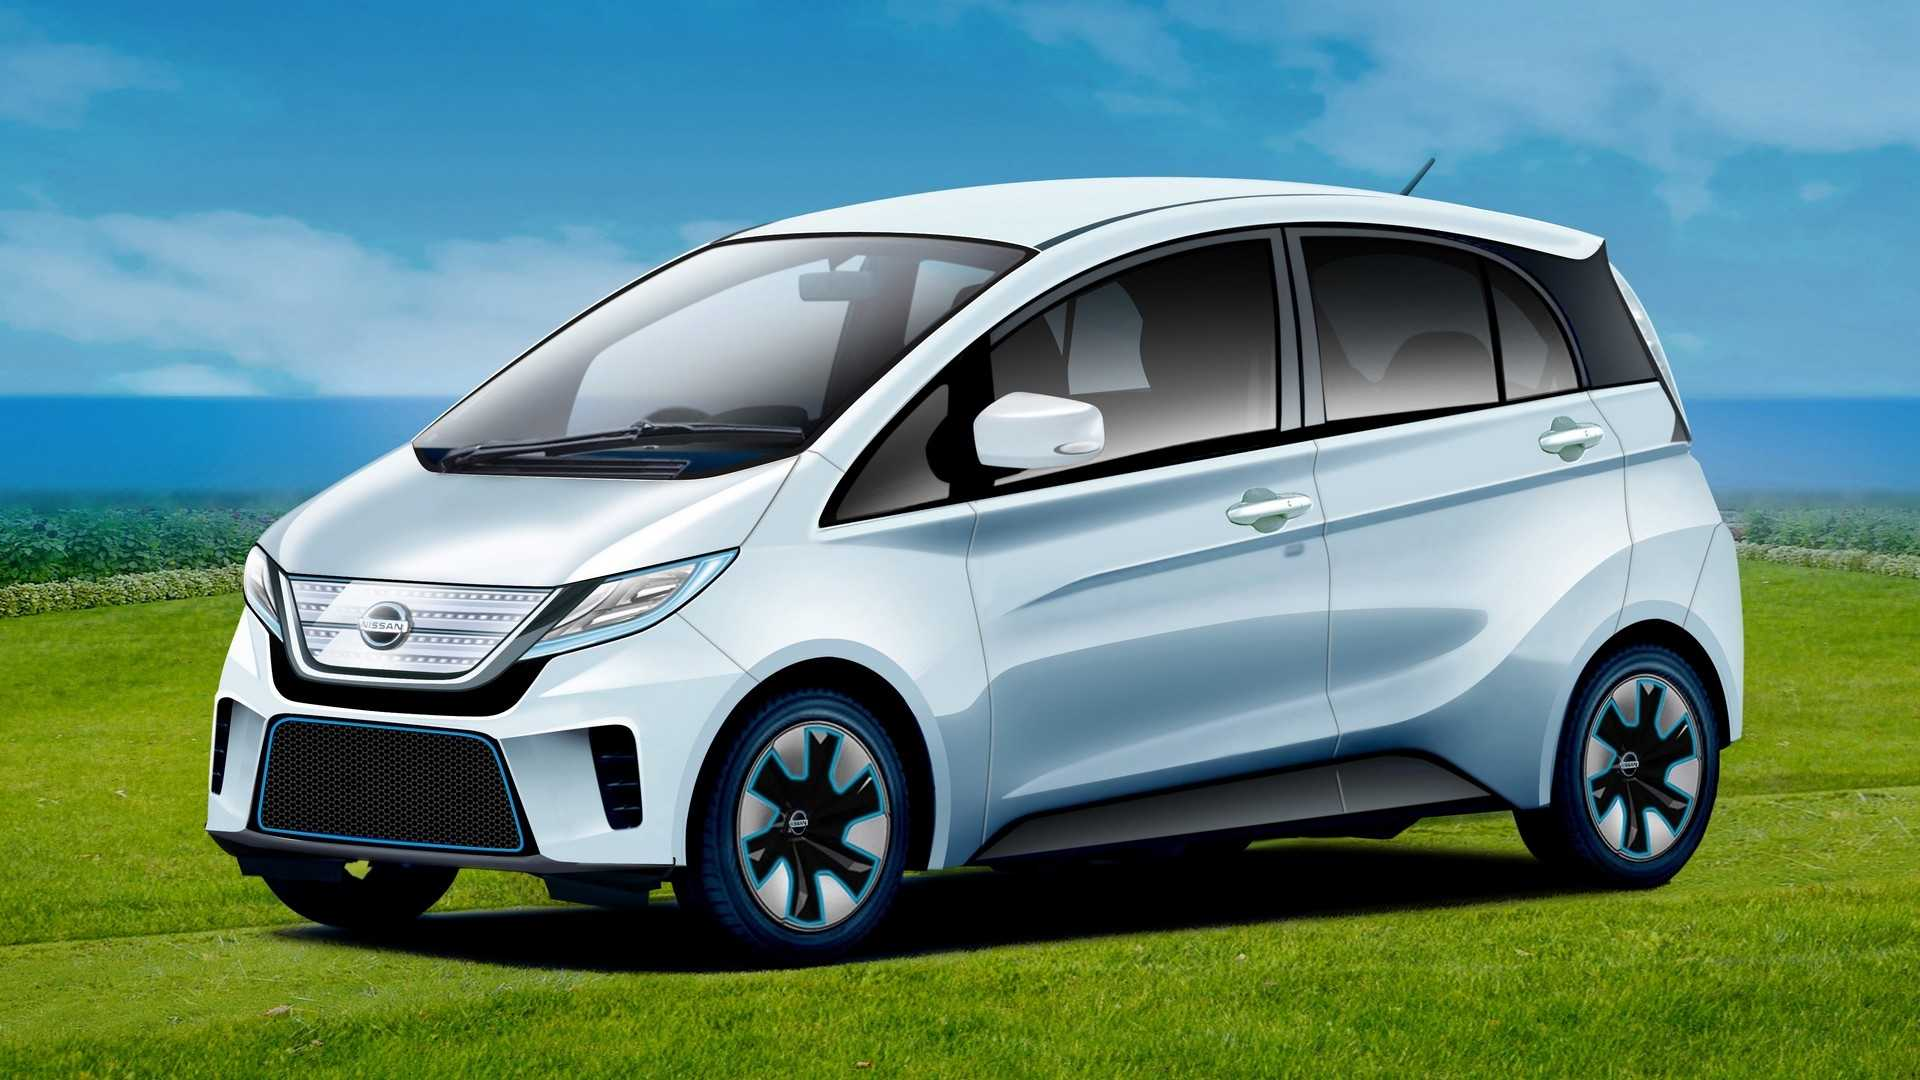 22 Great Mitsubishi I Miev 2020 Price and Review for Mitsubishi I Miev 2020